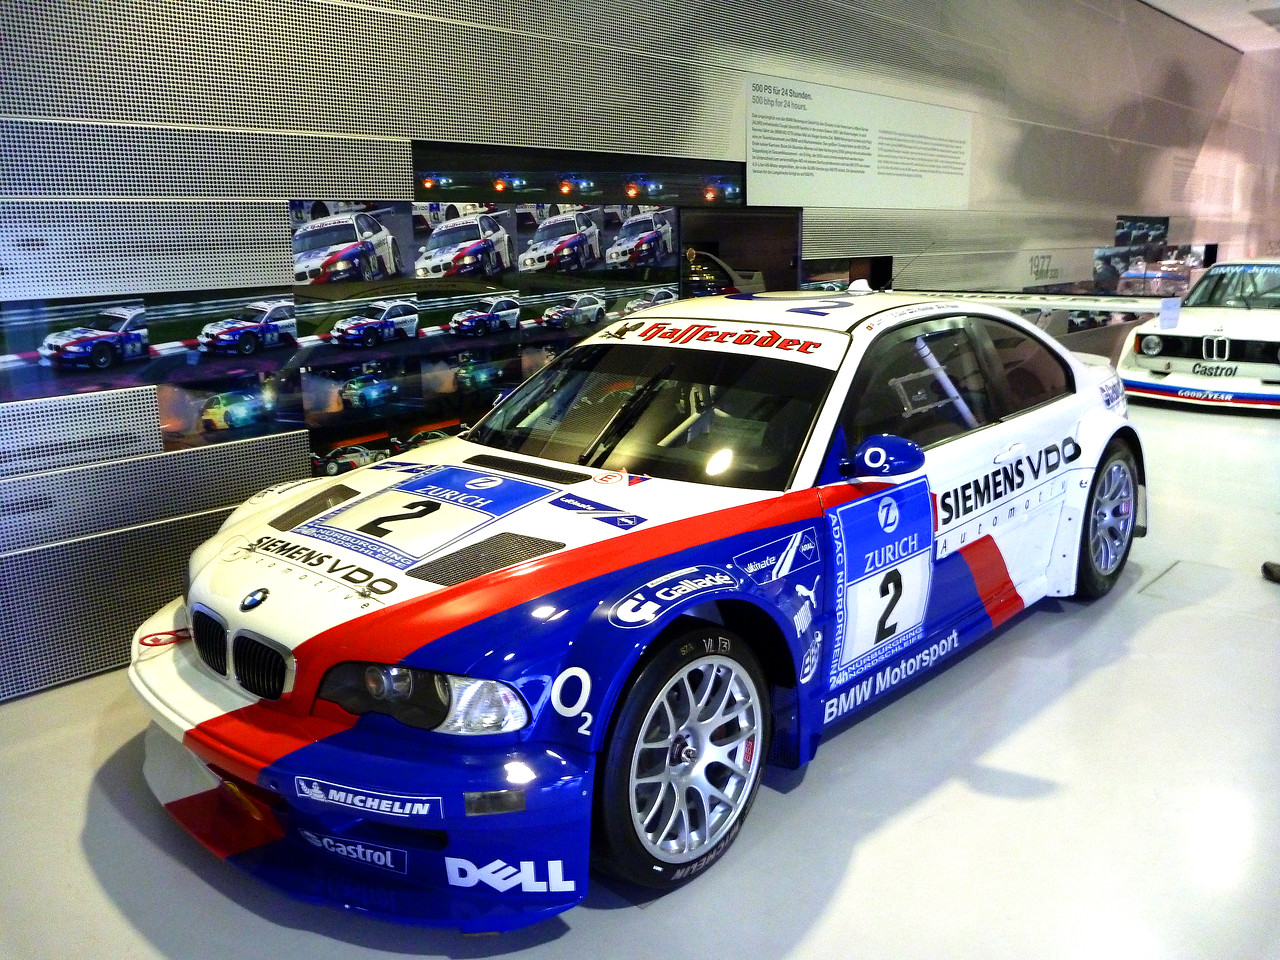 2004 BMW M3 GTS Race Car